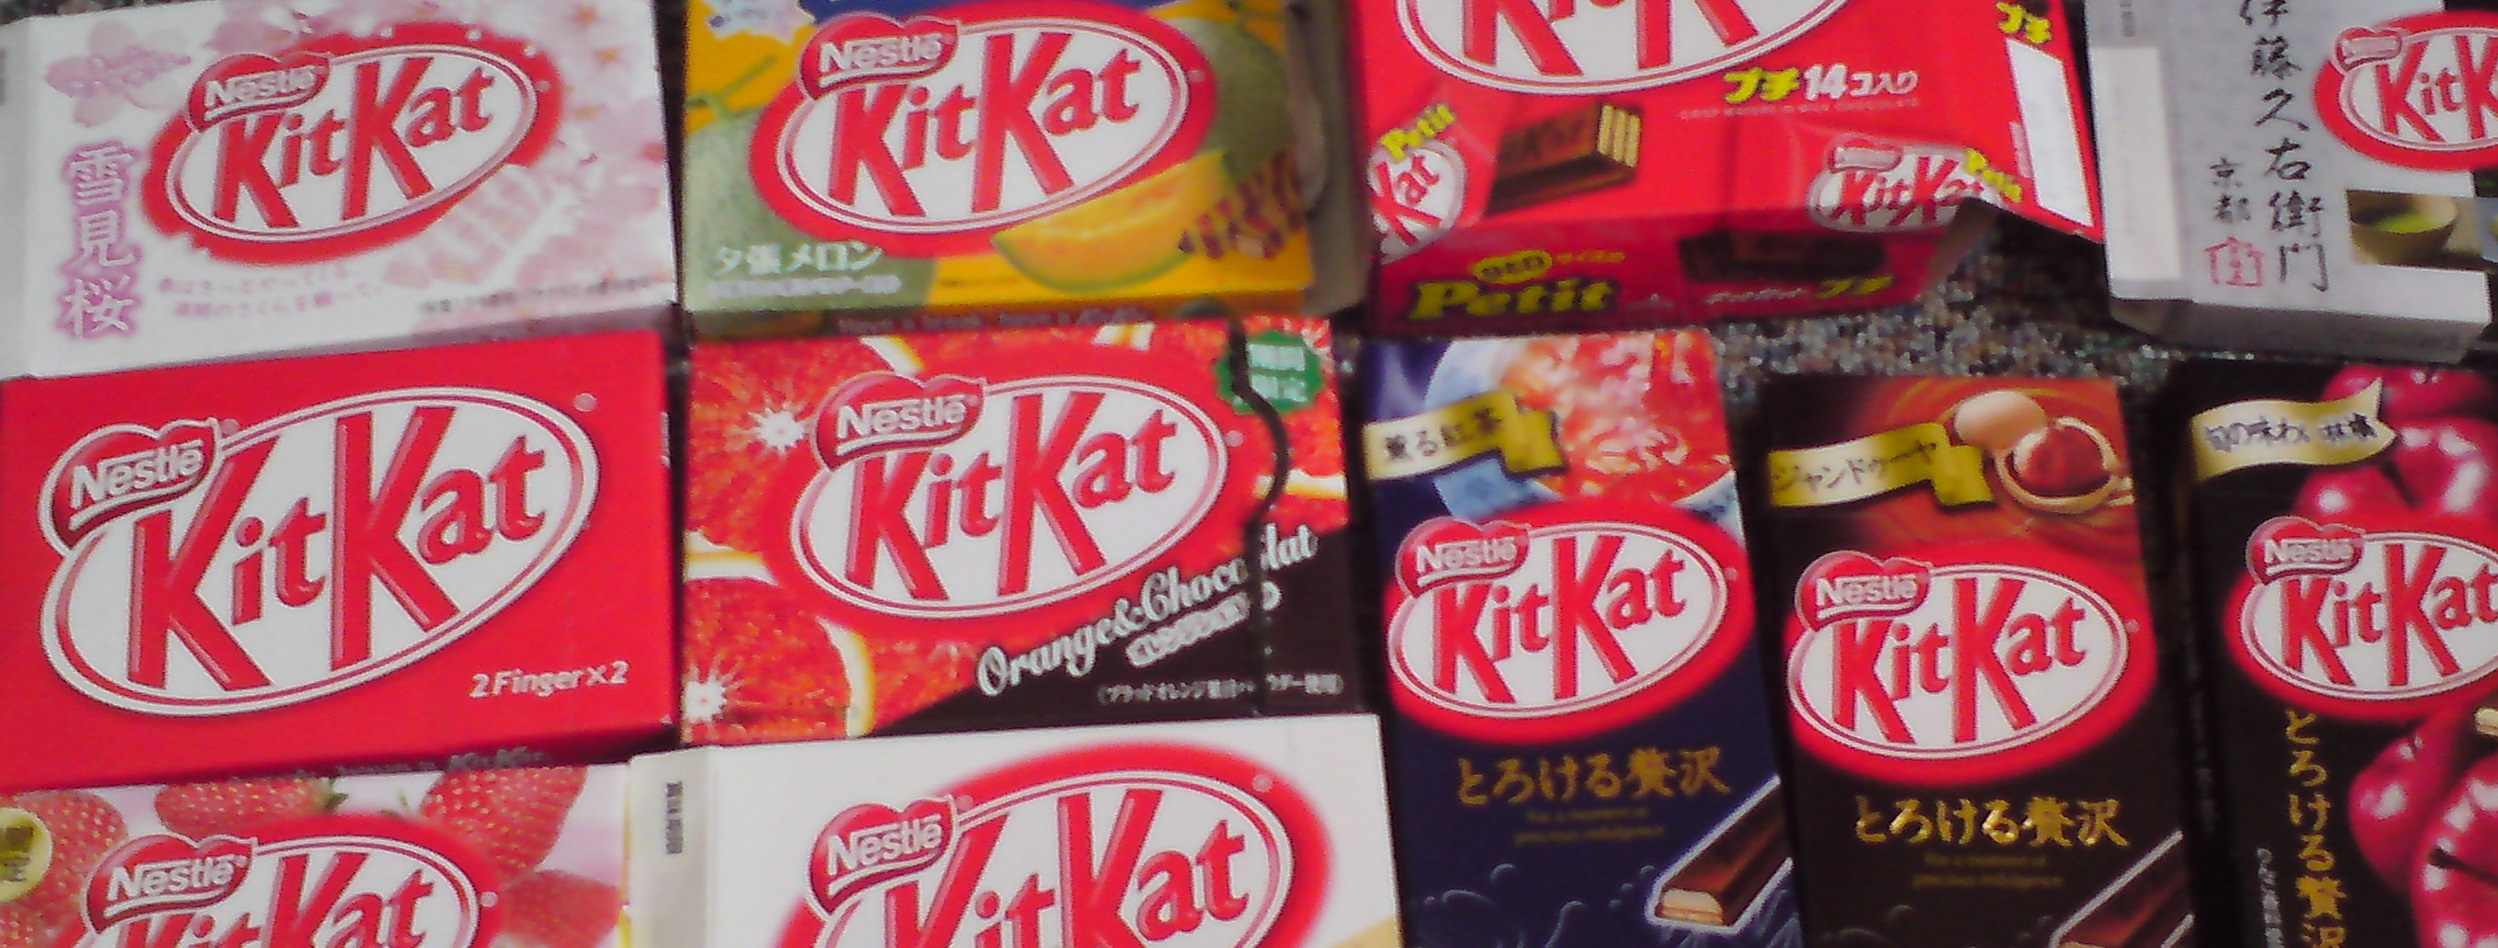 Android KitKat Hits 13.6% Adoption, Jelly Bean Falls Below 60%